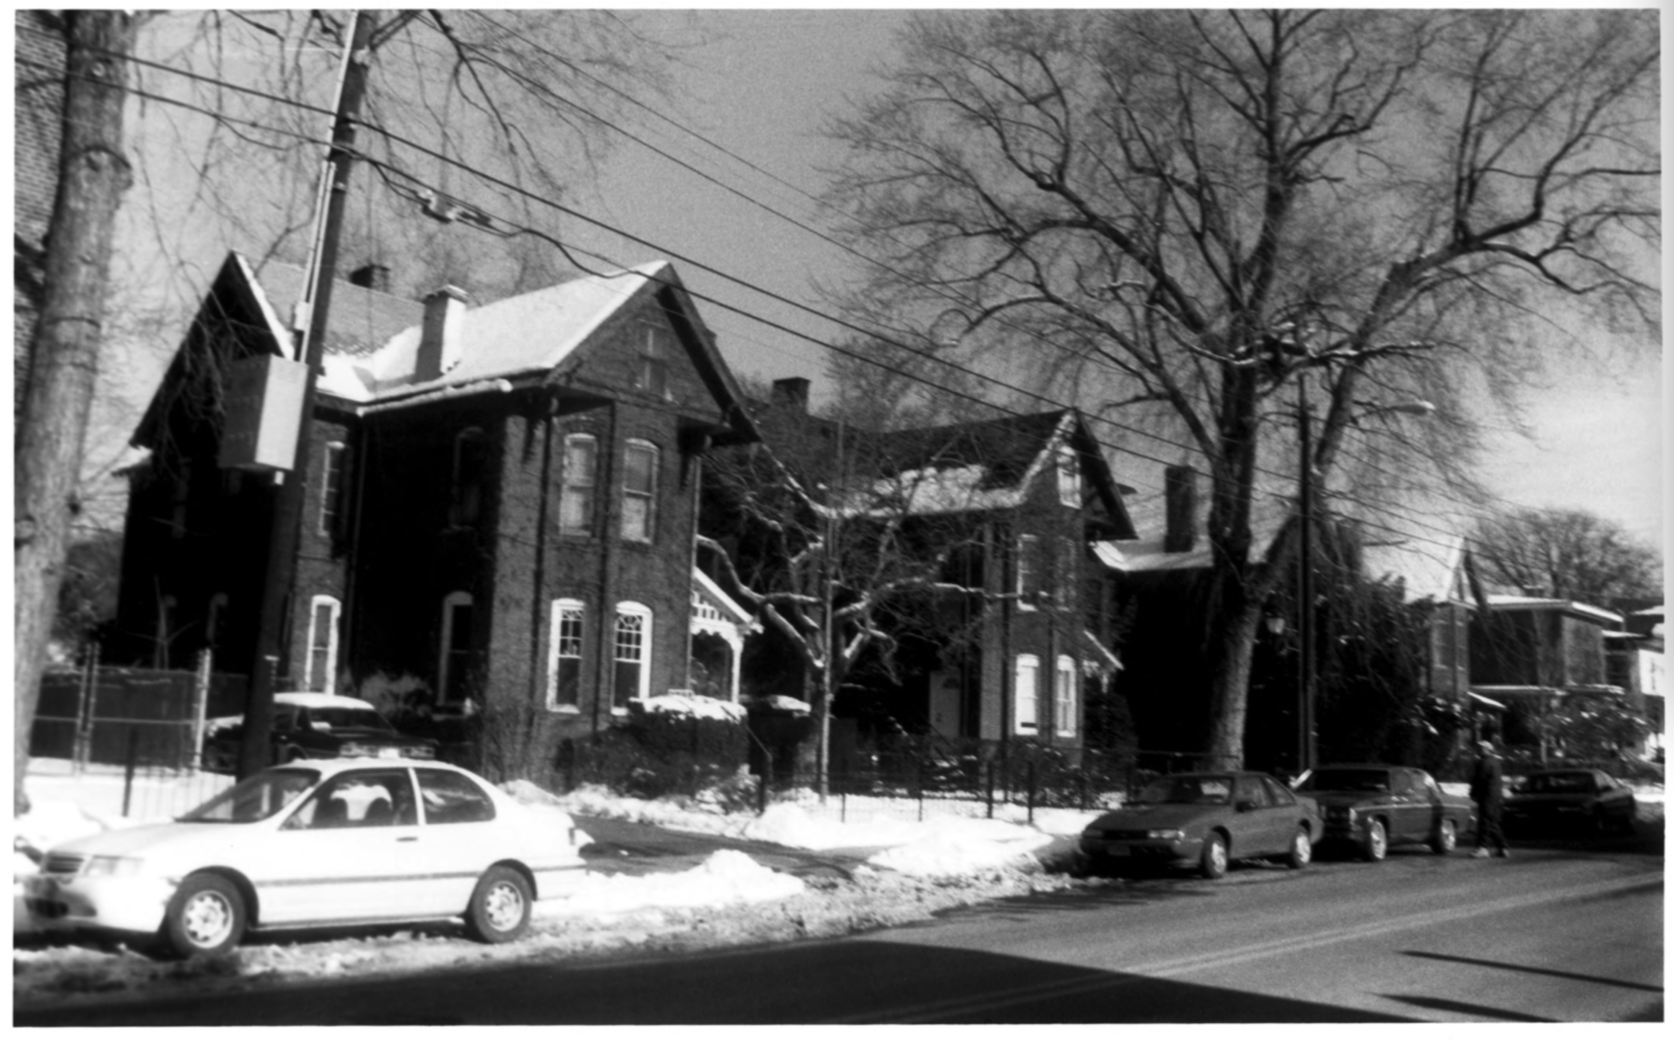 Allen Place - Lincoln Street Historic District Photo Record, Maintained by the NPS, Photo 17